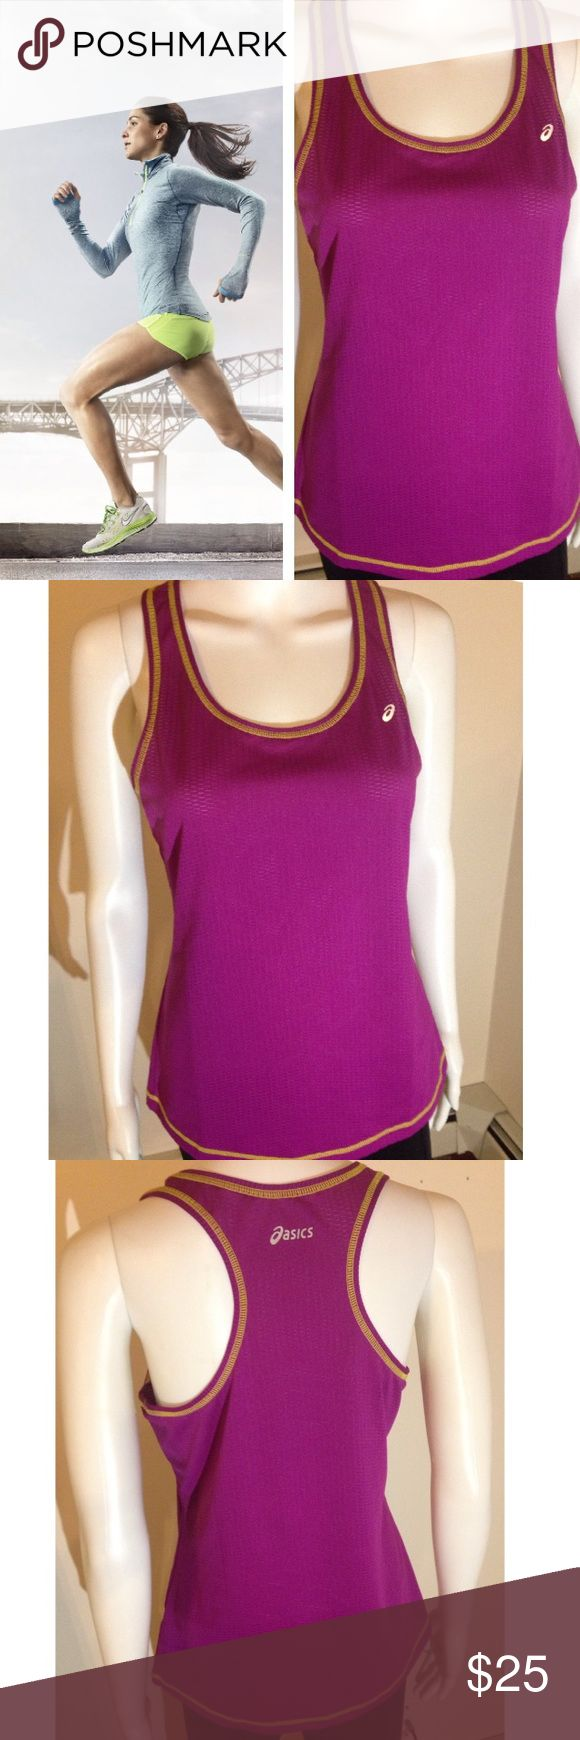 💥FLASH-SALE💥❤️❌ Asics Purple Tank Top Medium Asics Purple Tank Top Racer Back work out tank Keywords: womens faschion, women fashion, vintage, retro, free-spirited, ready-to-go outfits, off-the-shoulder, flower child style, fashion clothing, beauty, career, colors, patterns, party, sexy, cocktail, evening, formal, pageant, bridesmaid, wedding, new, summer sandal, beach, resort, vacation, teens, adults, woman, pretty girl, in style, trends, season runway show Asics Tops Tank Tops